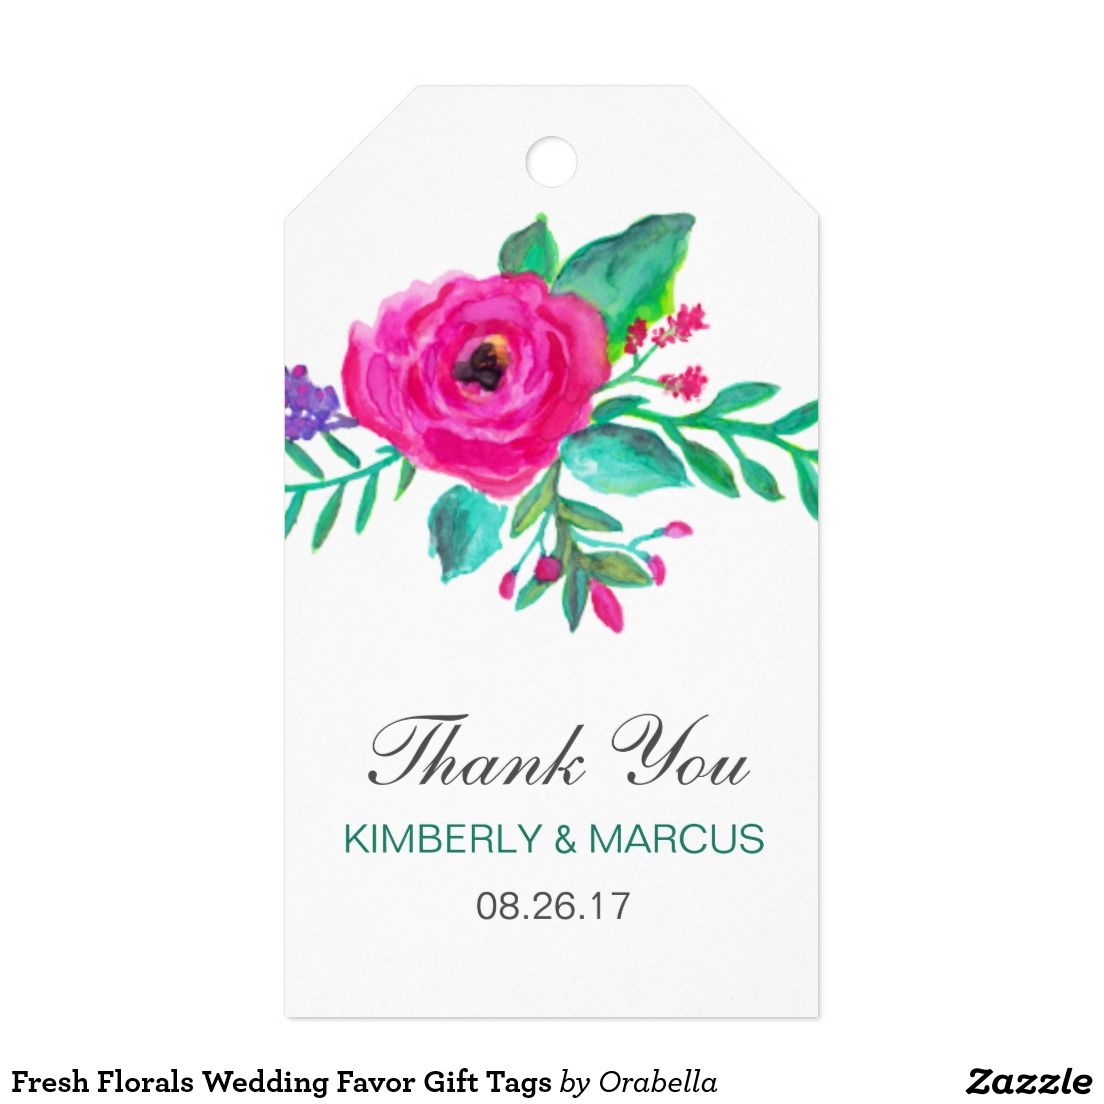 Fresh Florals Wedding Favor Gift Tags | Florals, Favors and Weddings